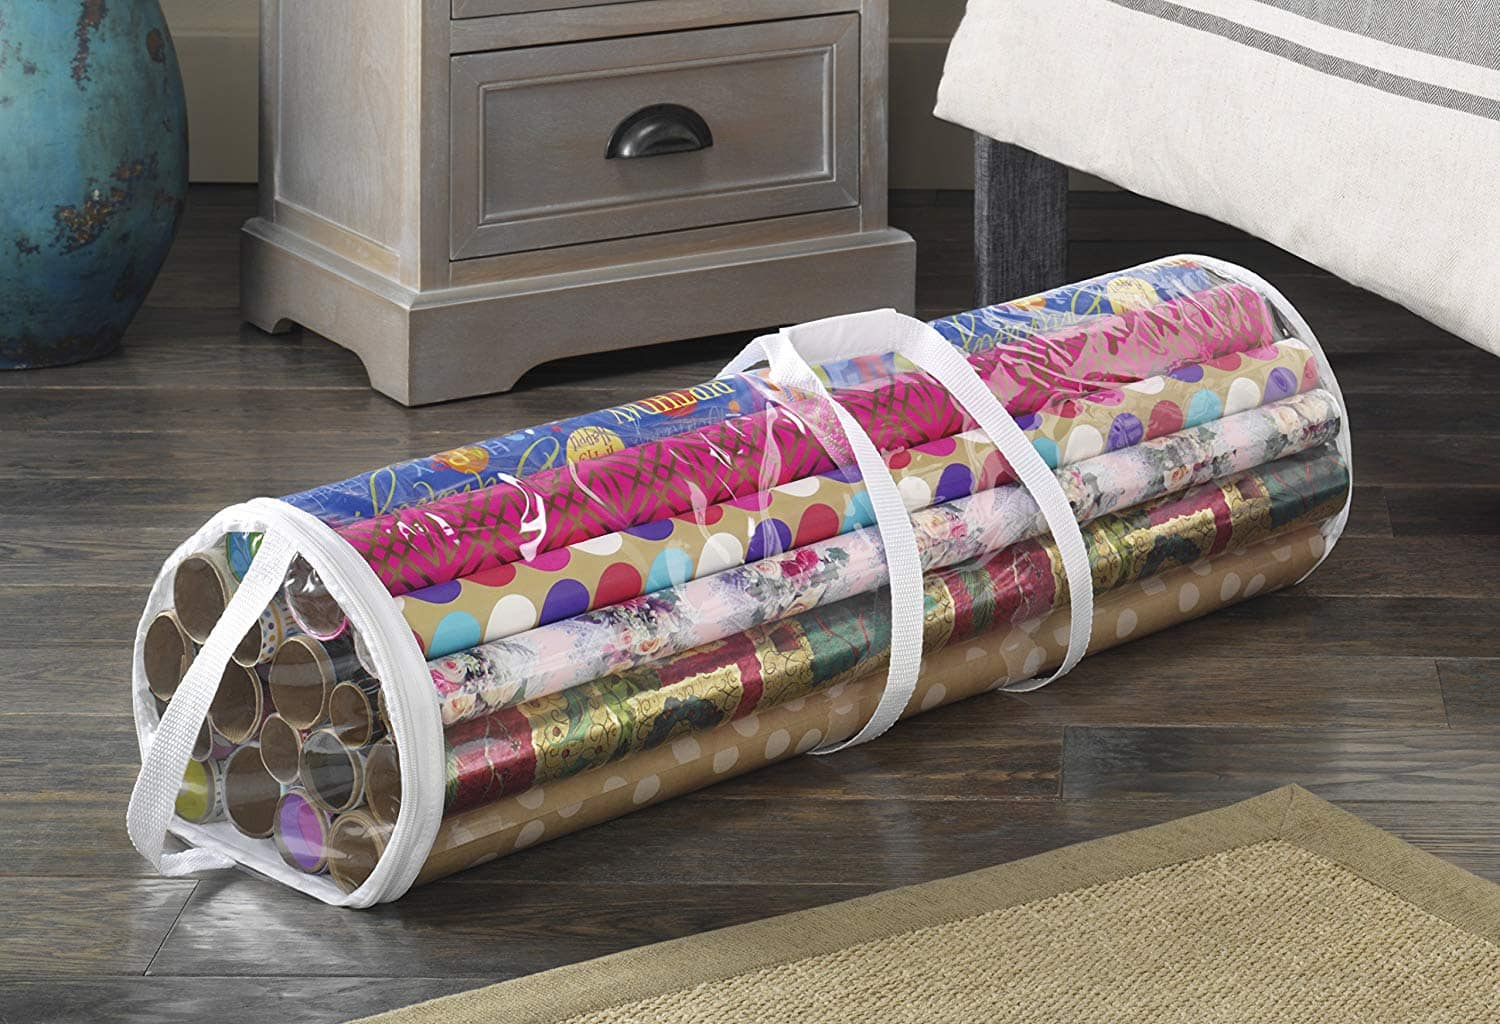 Whitmor Clear Gift Wrap Organizer - Zippered Storage for 25 Rolls - FS/Prime @ Amazon $4.35 & Whitmor Clear Gift Wrap Organizer - Zippered Storage for 25 Rolls ...